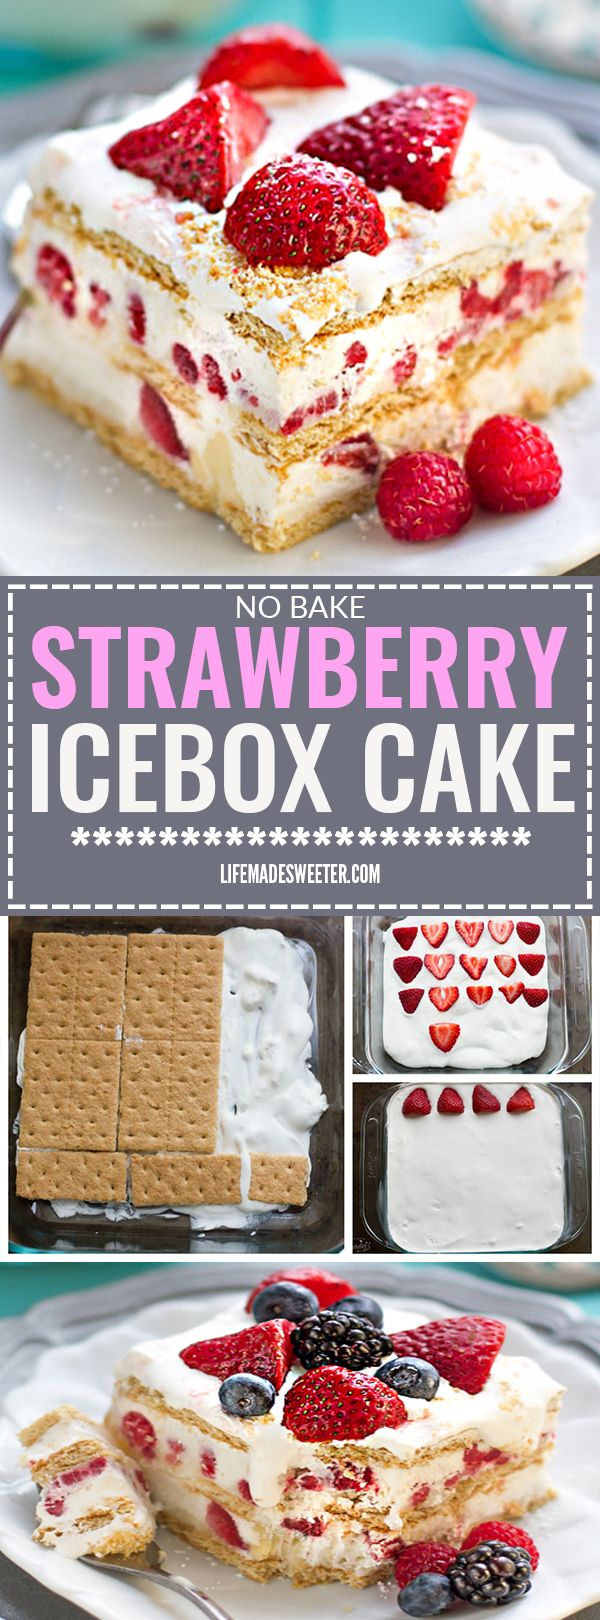 No BAKE Strawberry Cheesecake Icebox Cake is the perfect EASY dessert for spring and summer potlucks, cookouts, parties, barbecues, picnics, Mother's Day & baby showers. A favorite ice box dessert tha (Favorite Desserts Graham Crackers)